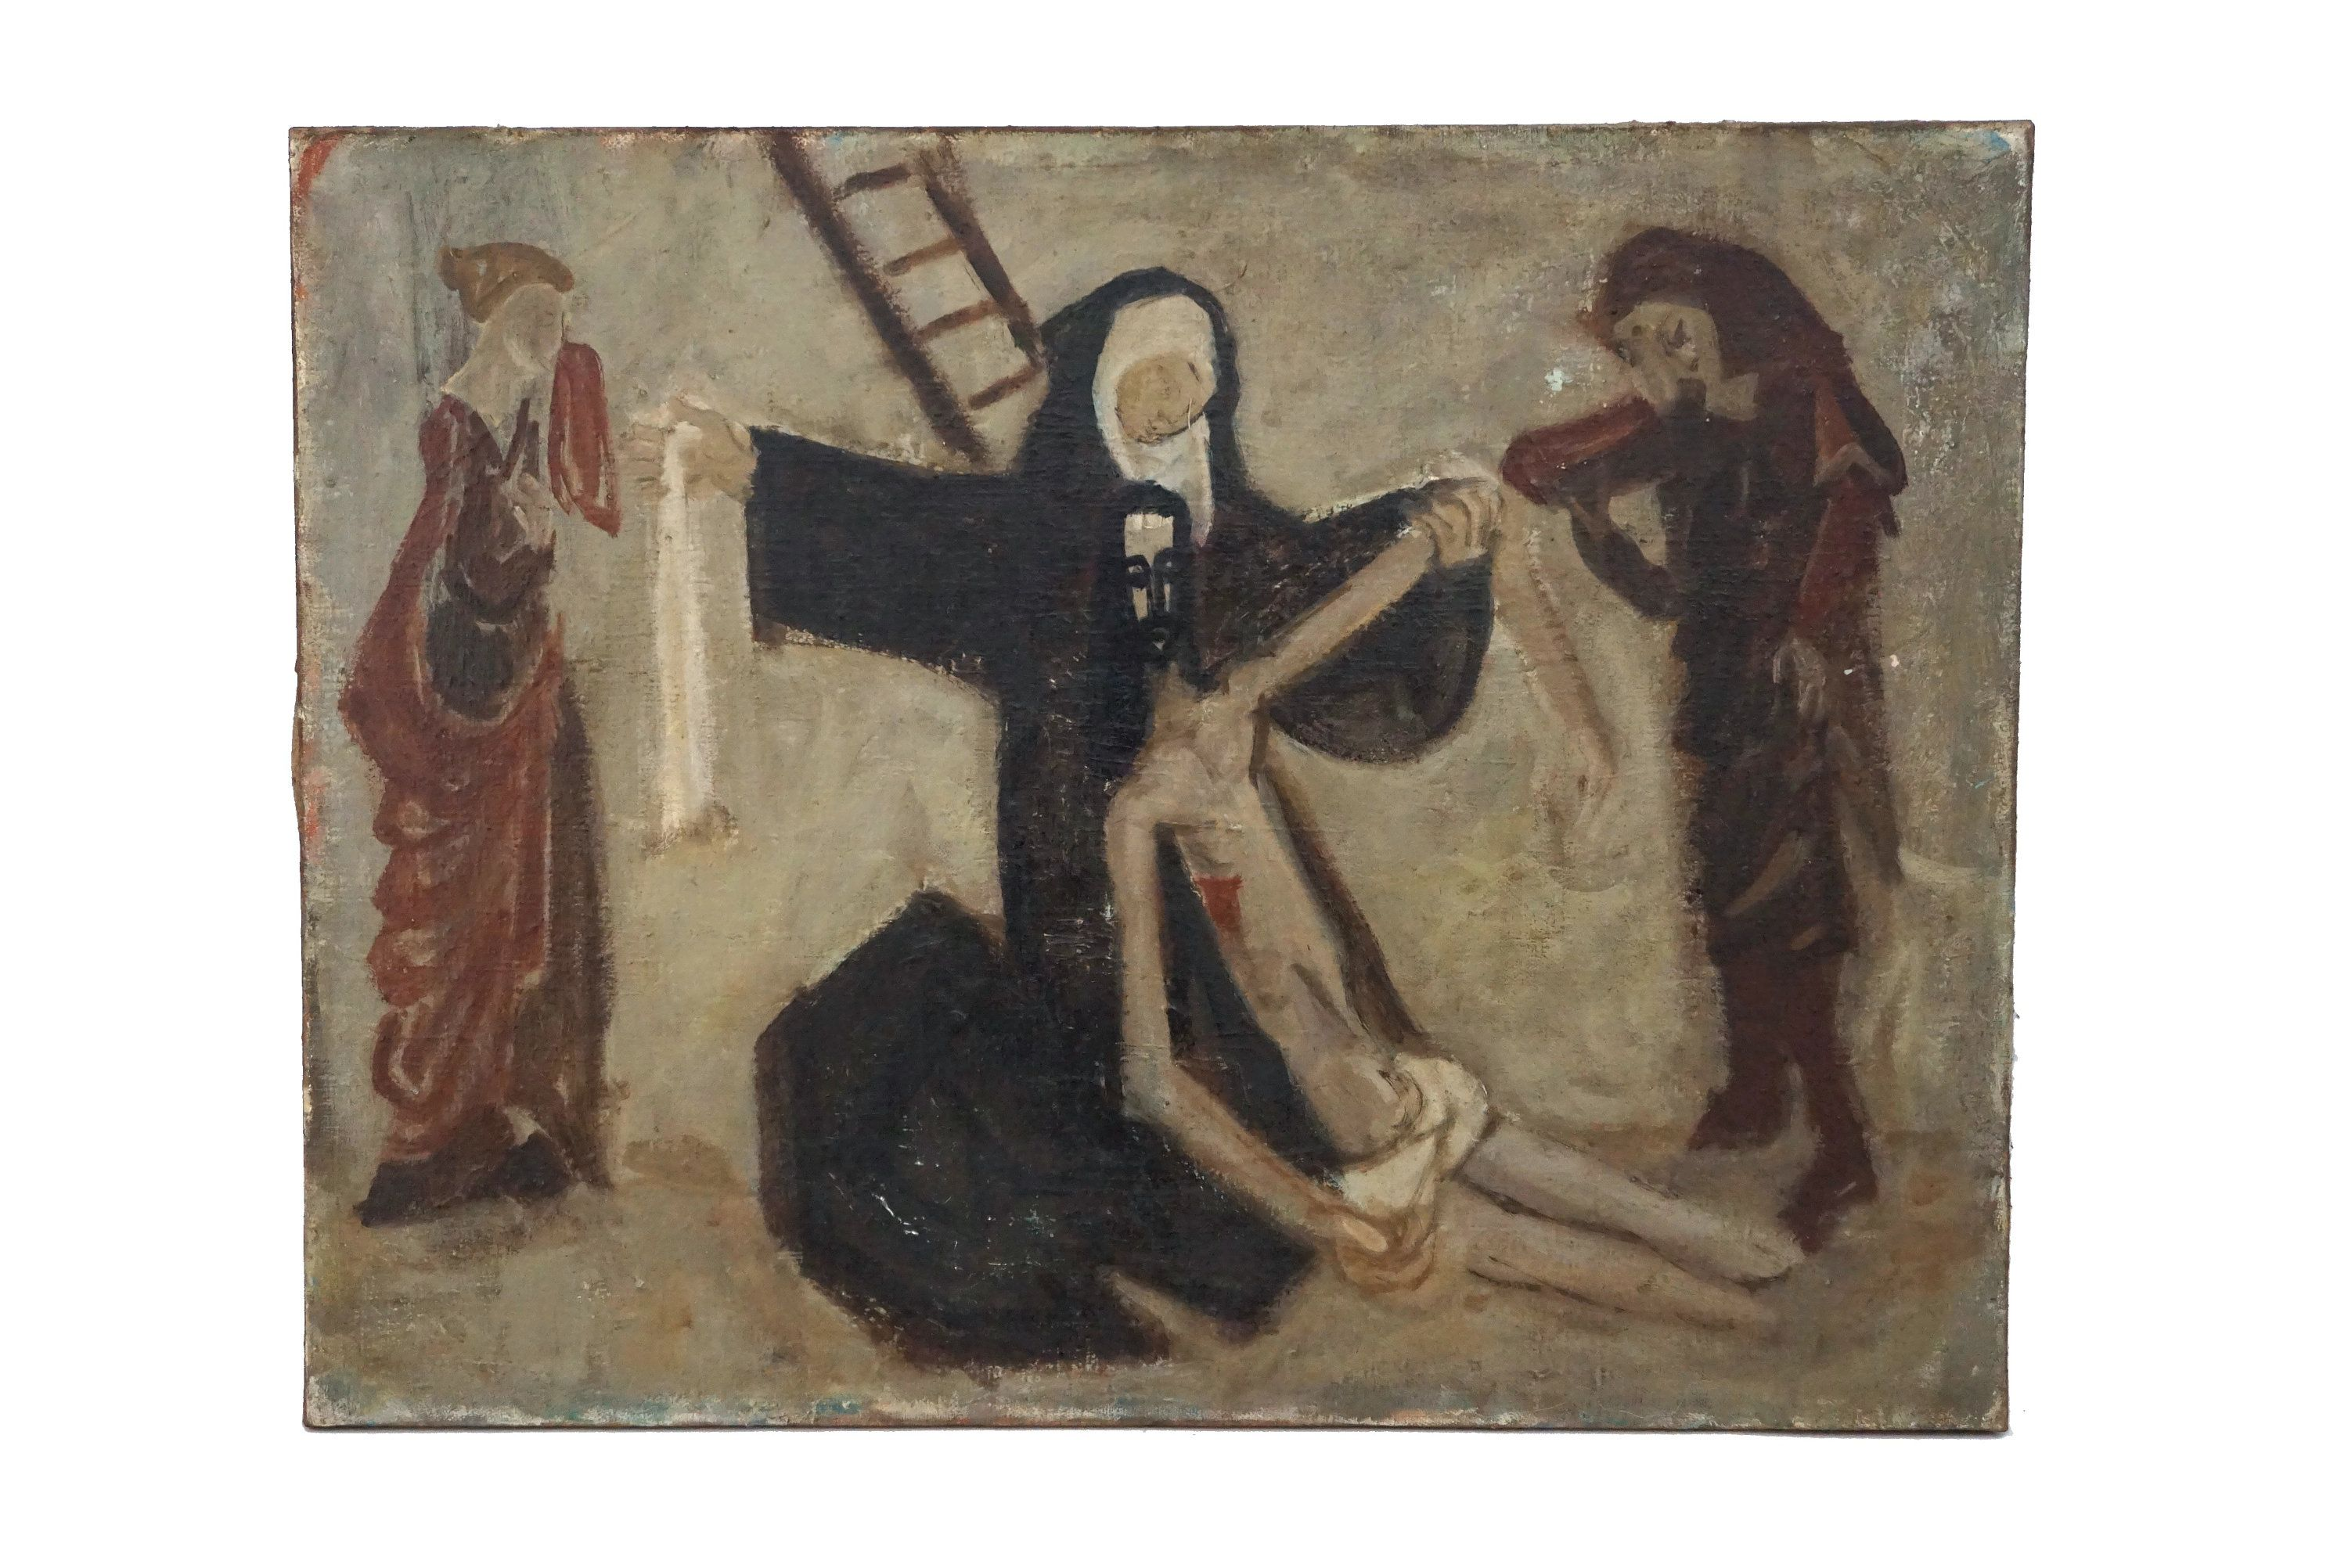 Crucifixion Of Jesus Christ With Virgin Mary Saint John And Mary Magdalene Christian Wall Hanging Art In 2020 Painting Pugs And Kisses Hanging Art